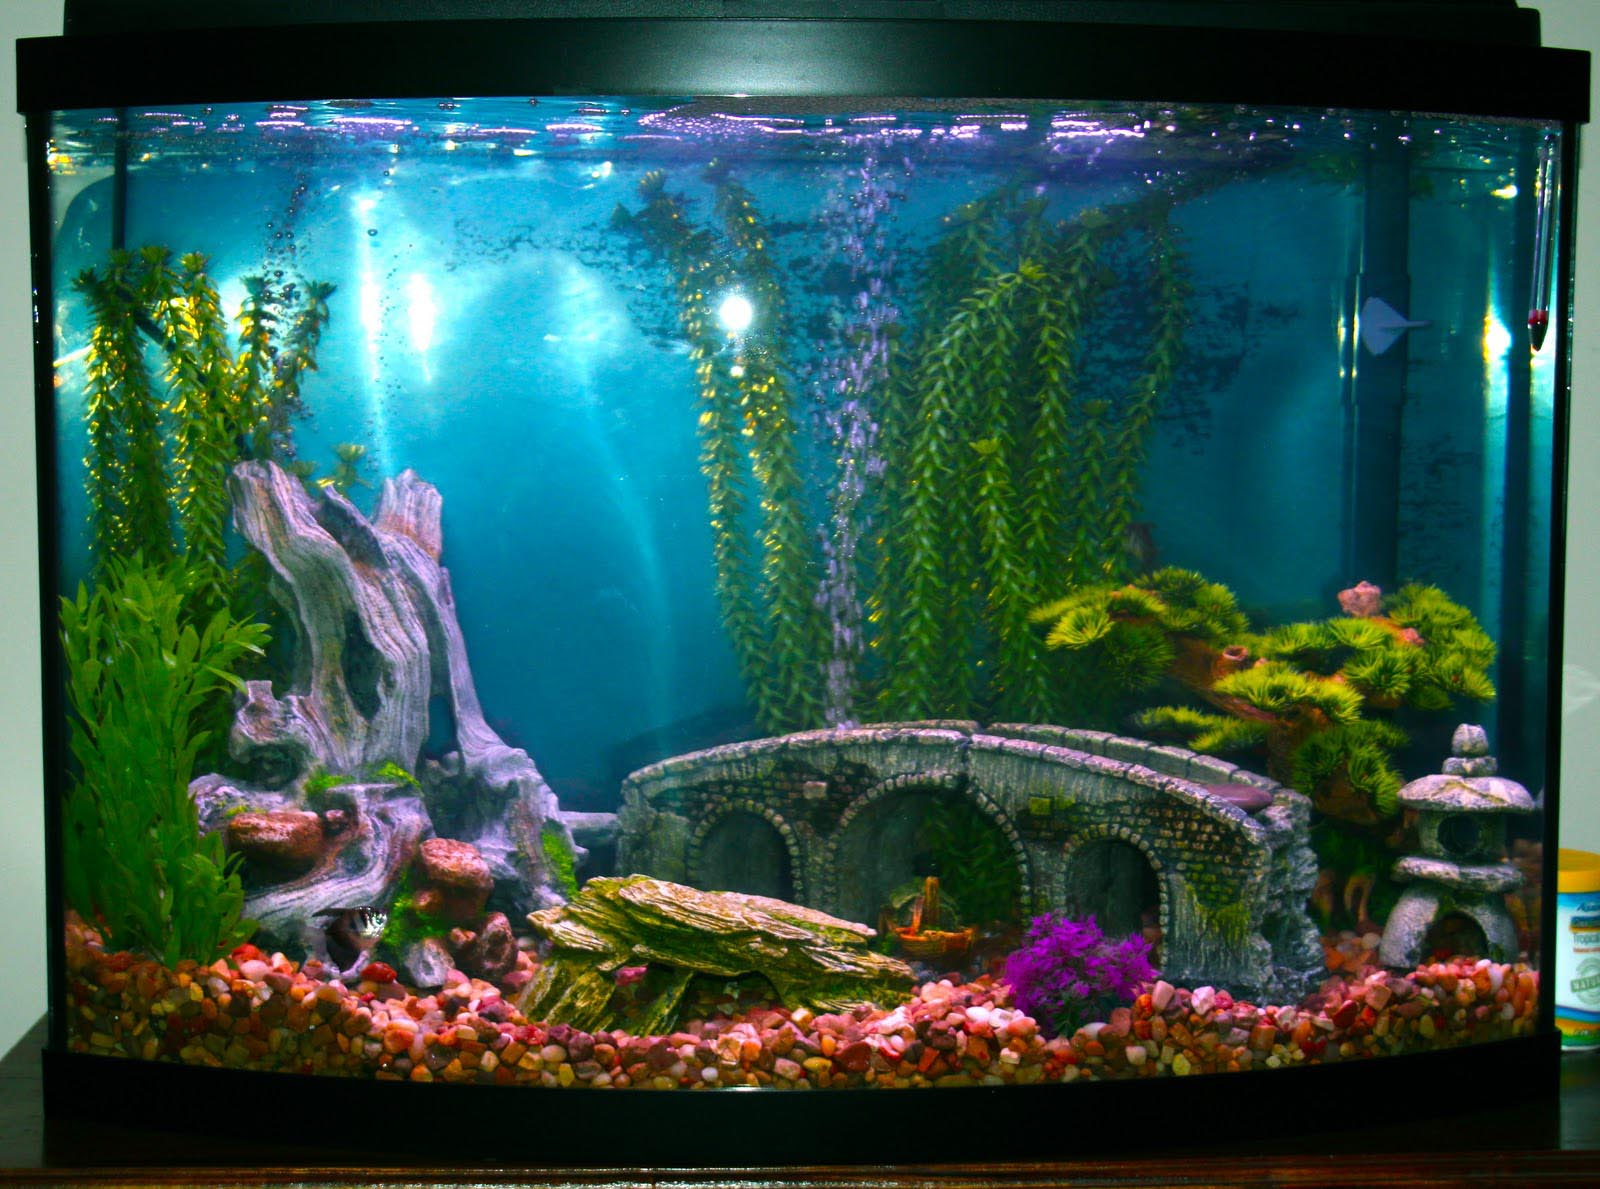 Aquarium Decoration Design : Decor for fish tanks aquarium design ideas